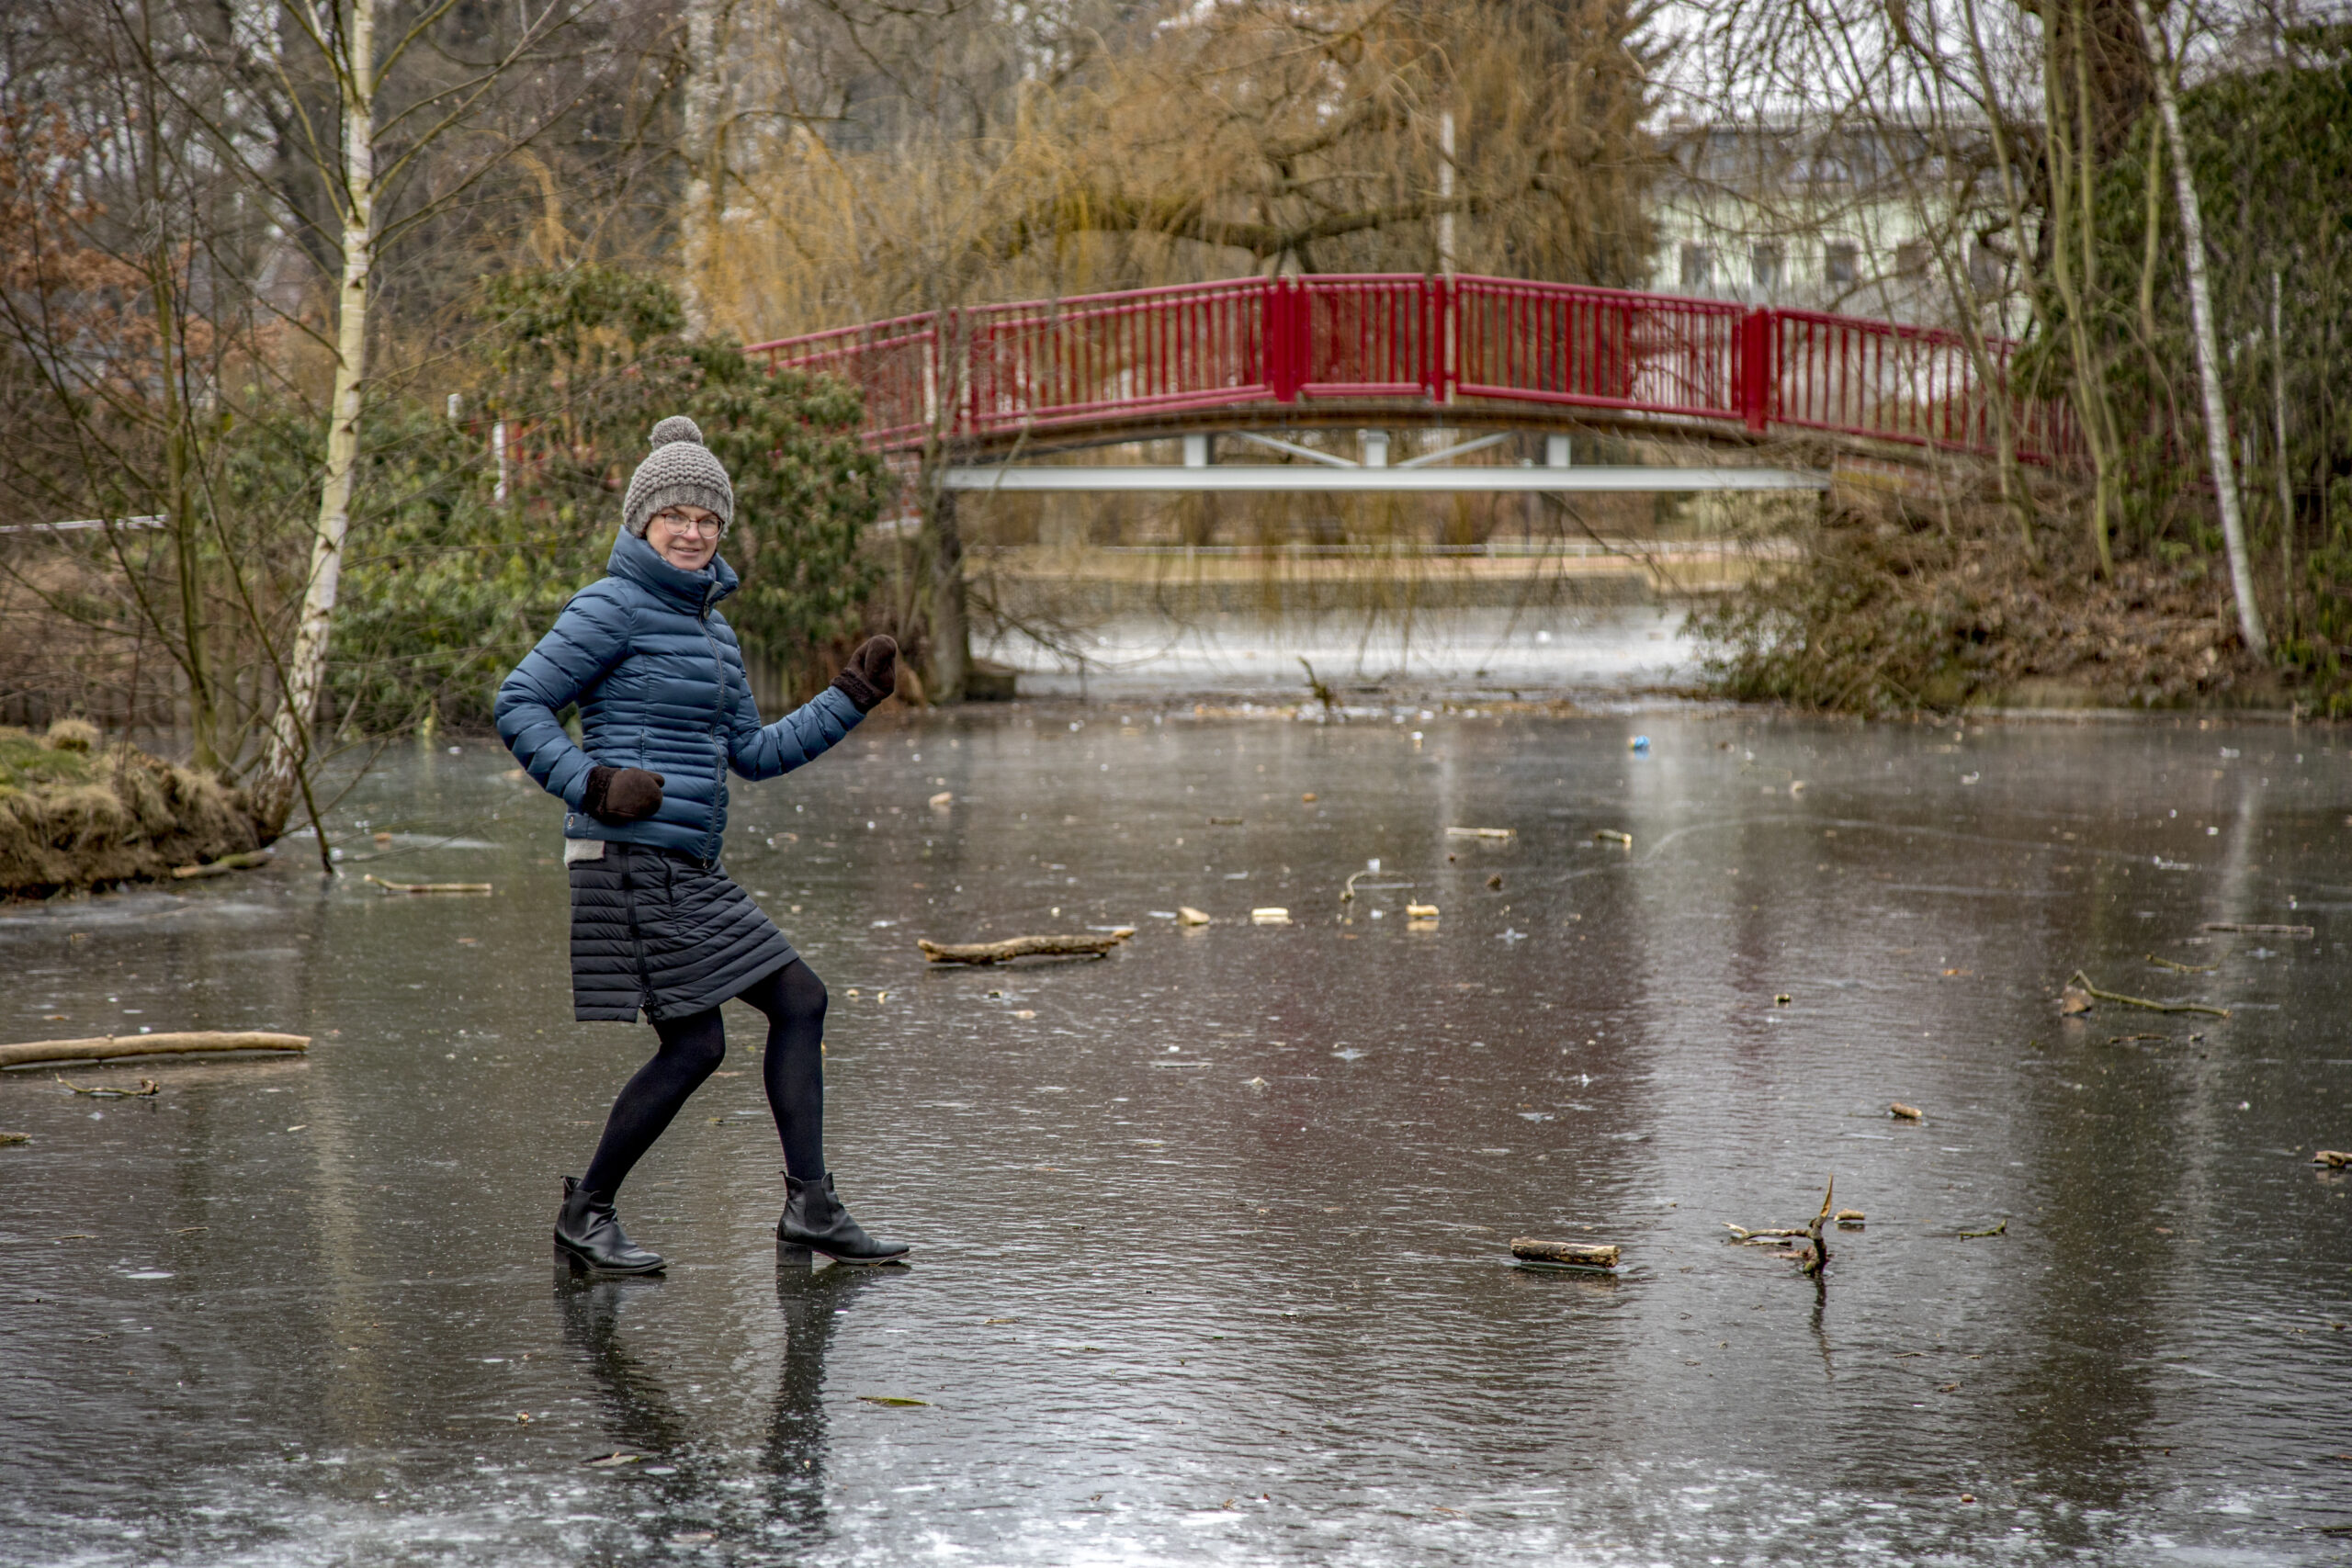 Frozen water safety for recreational land